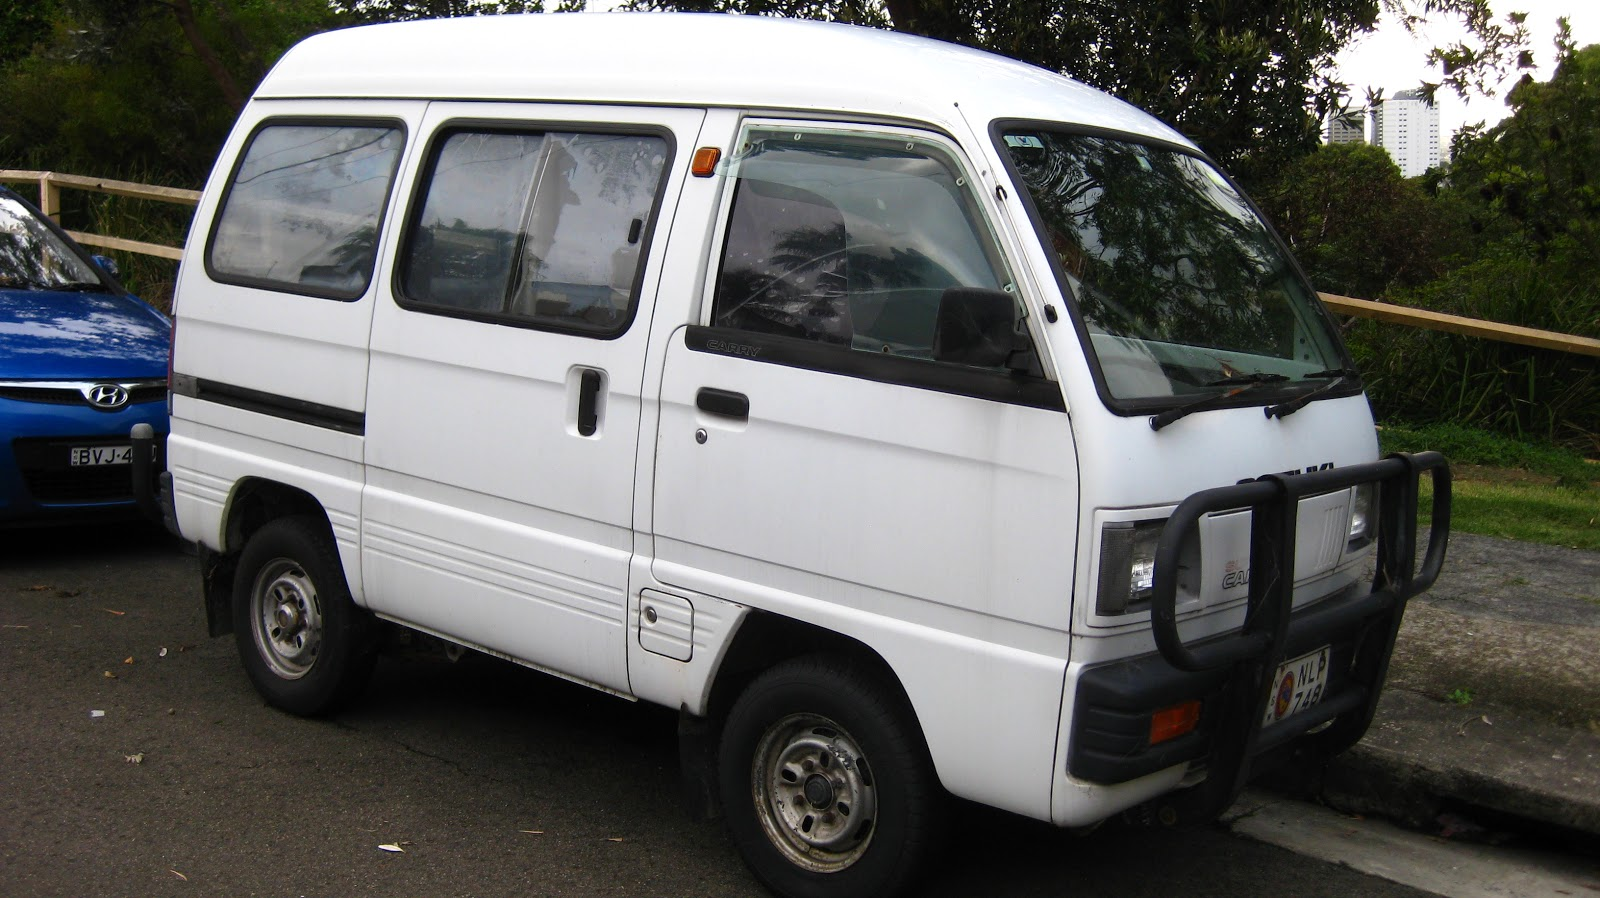 Aussie Old Parked Cars: 1988 Suzuki Super Carry (Autozam